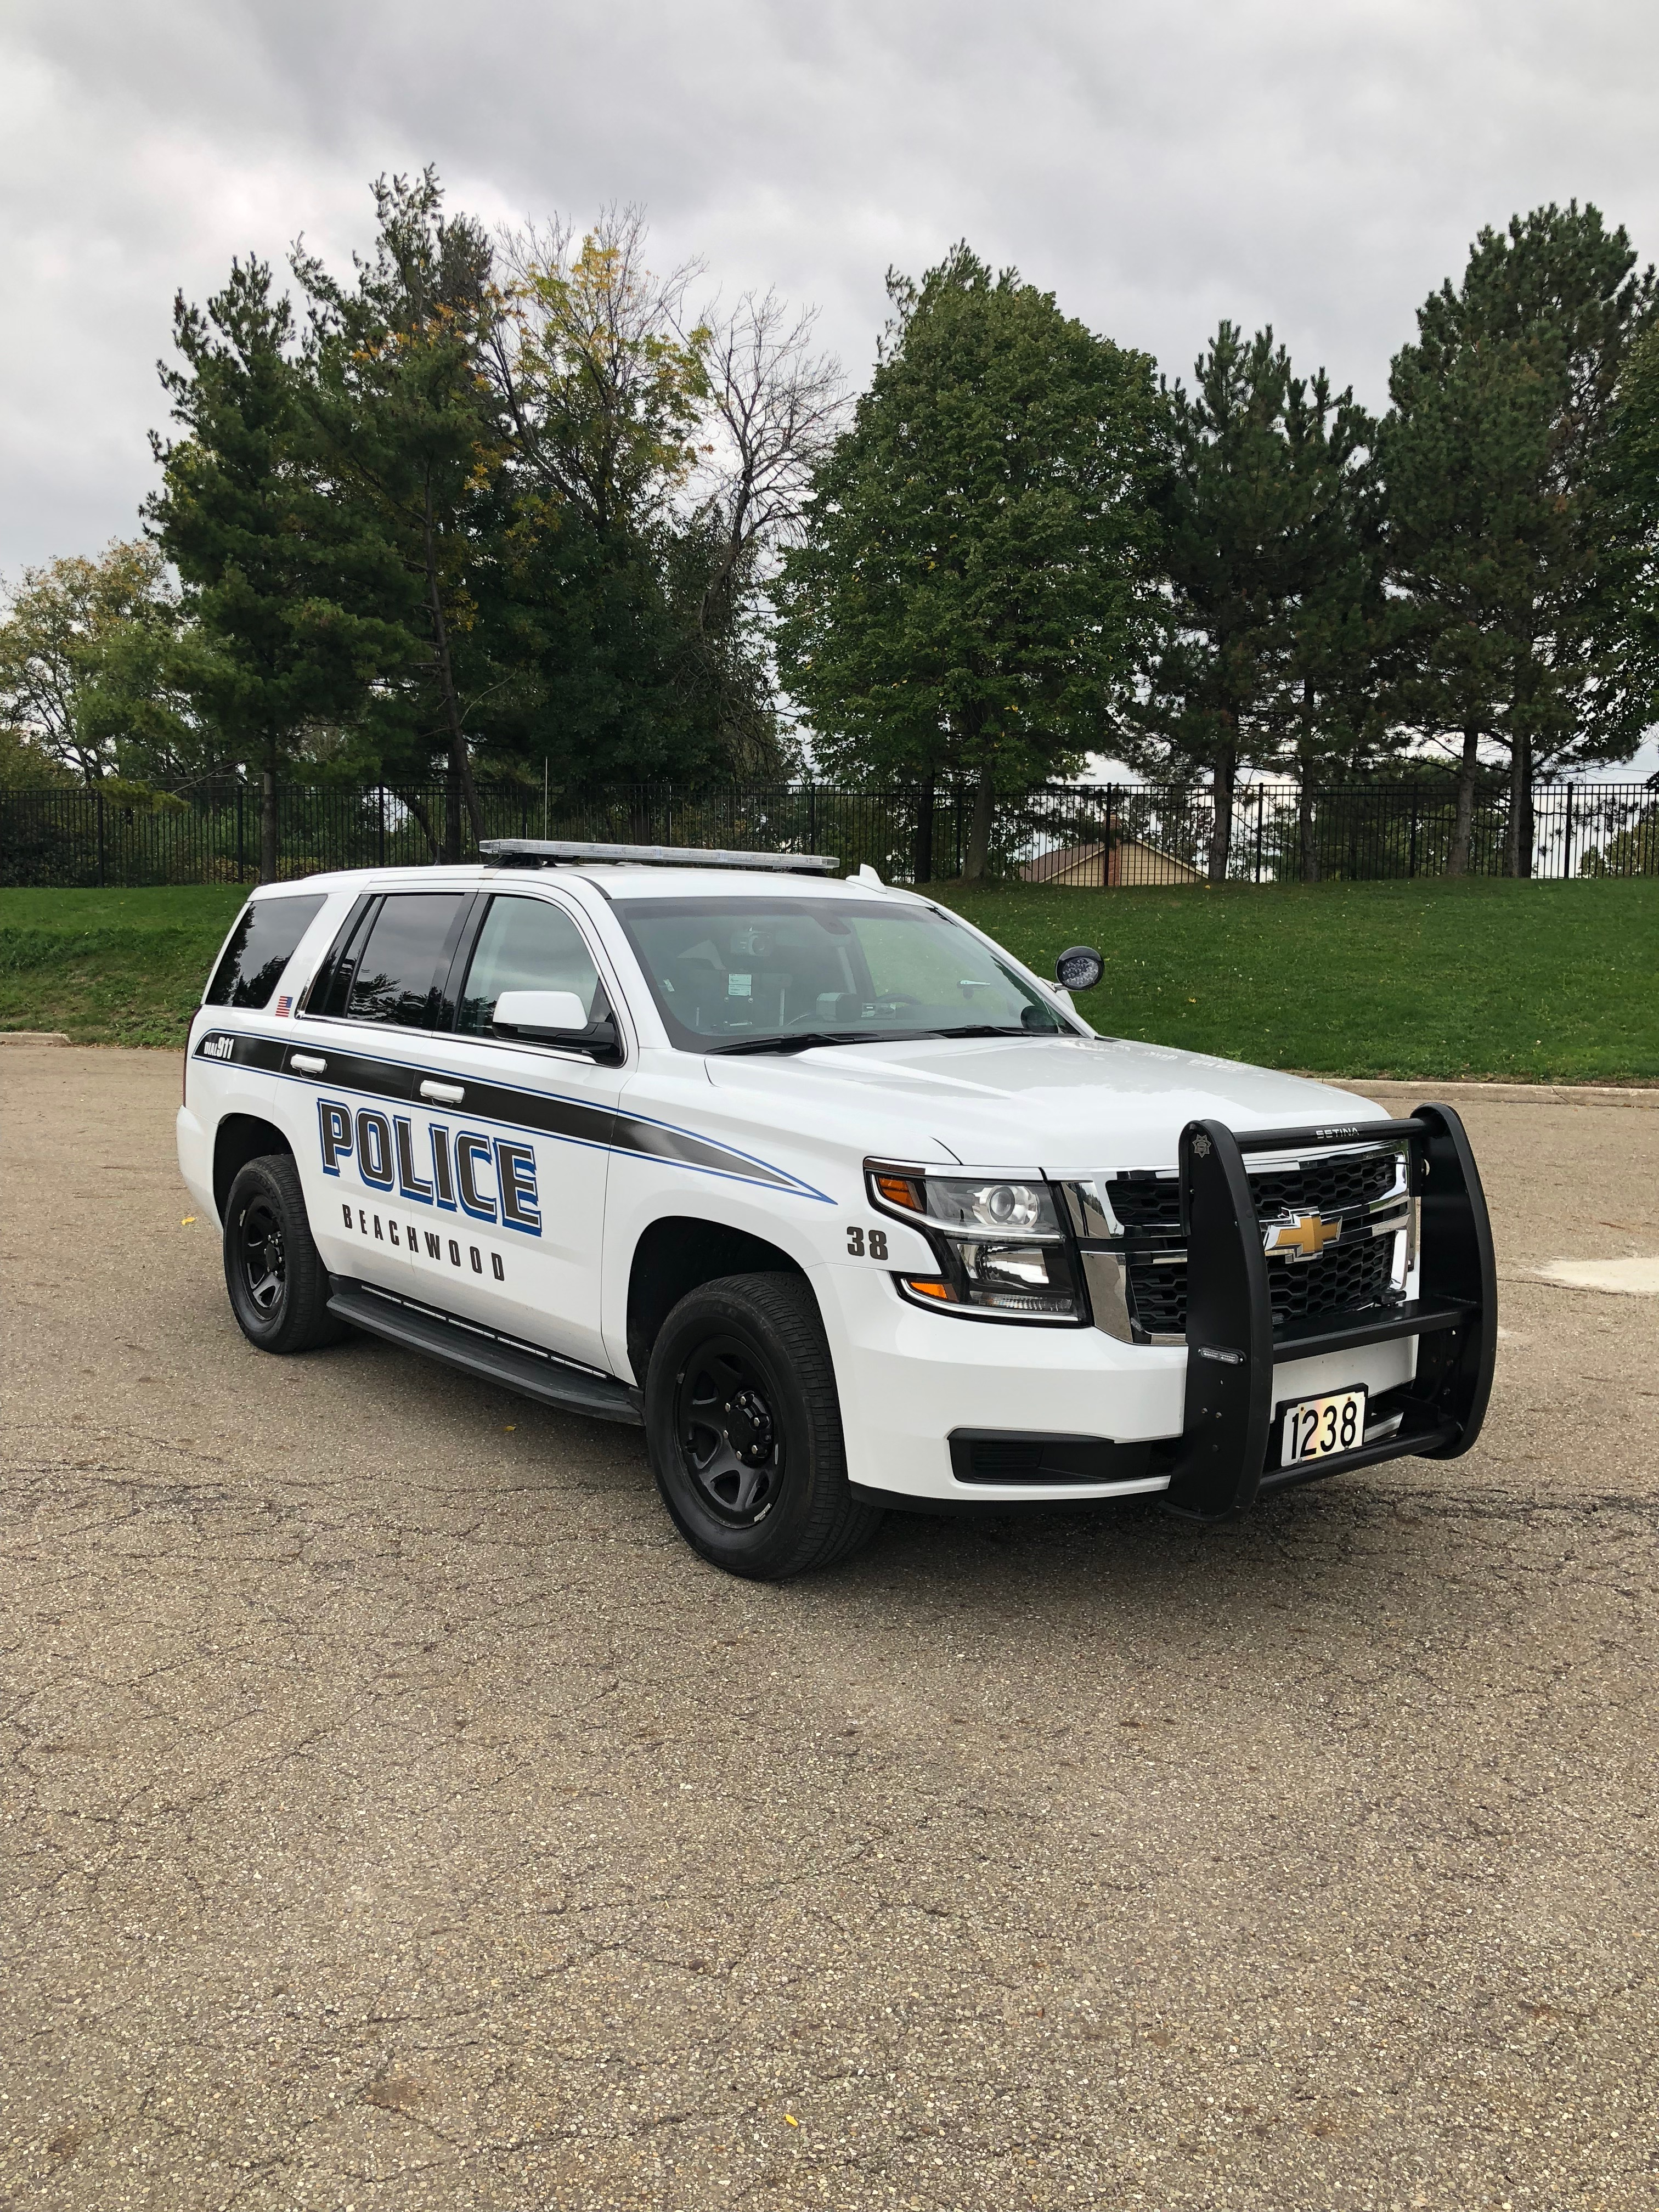 Beachwood Police Cruiser 1238